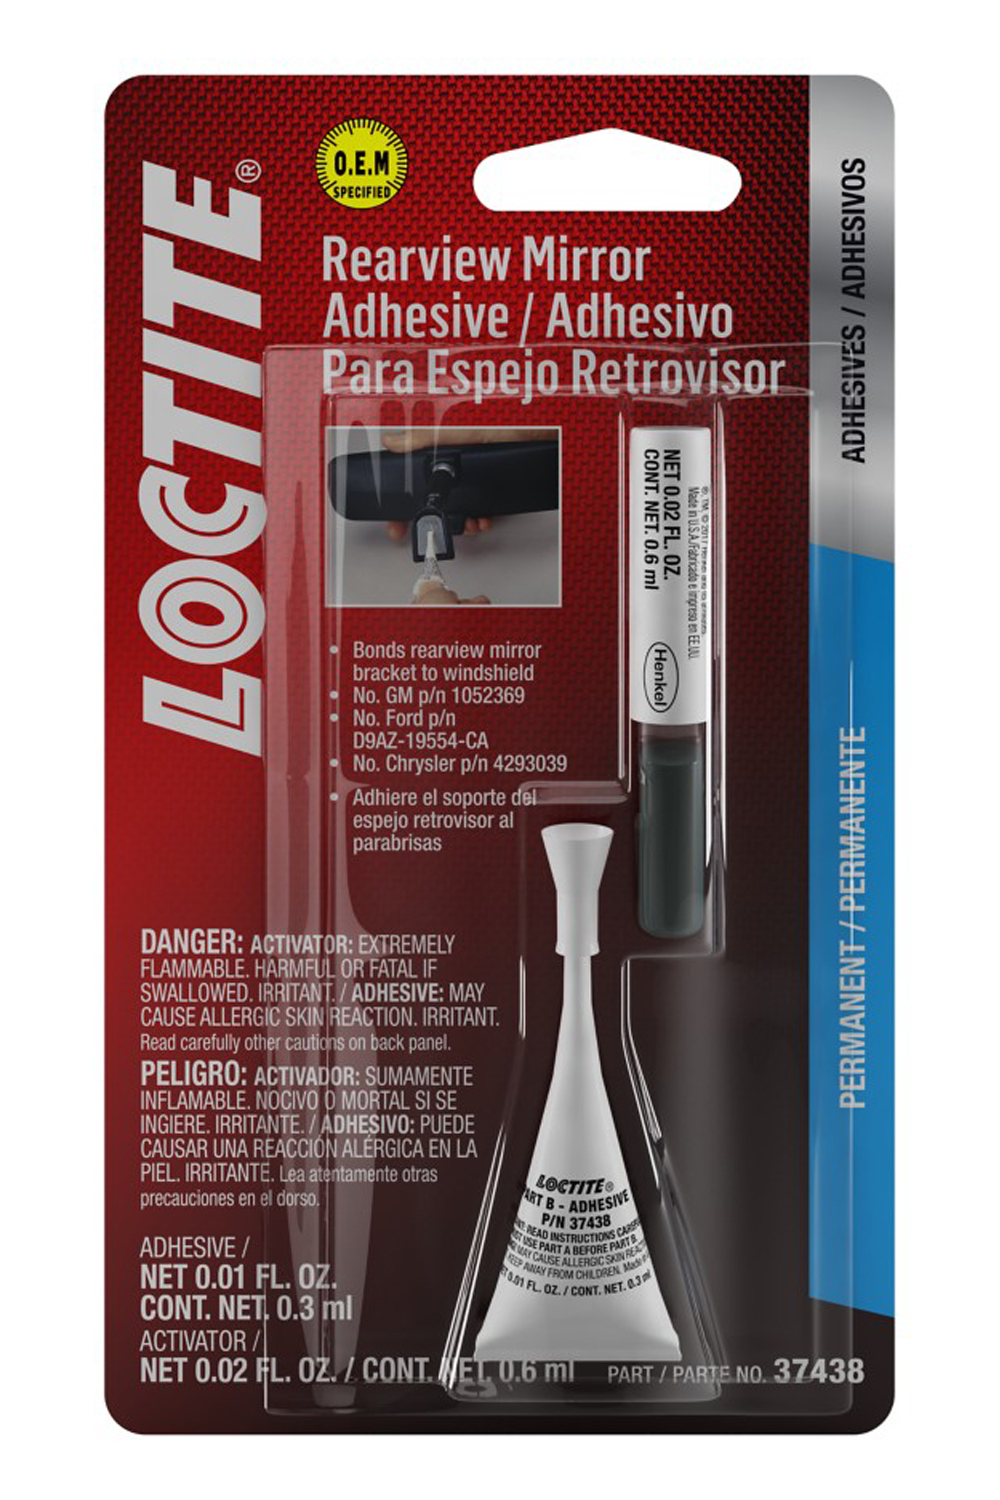 Loctite 487865 Adhesive, Rearview Mirror, 2 Part, 3 g Tube, Kit